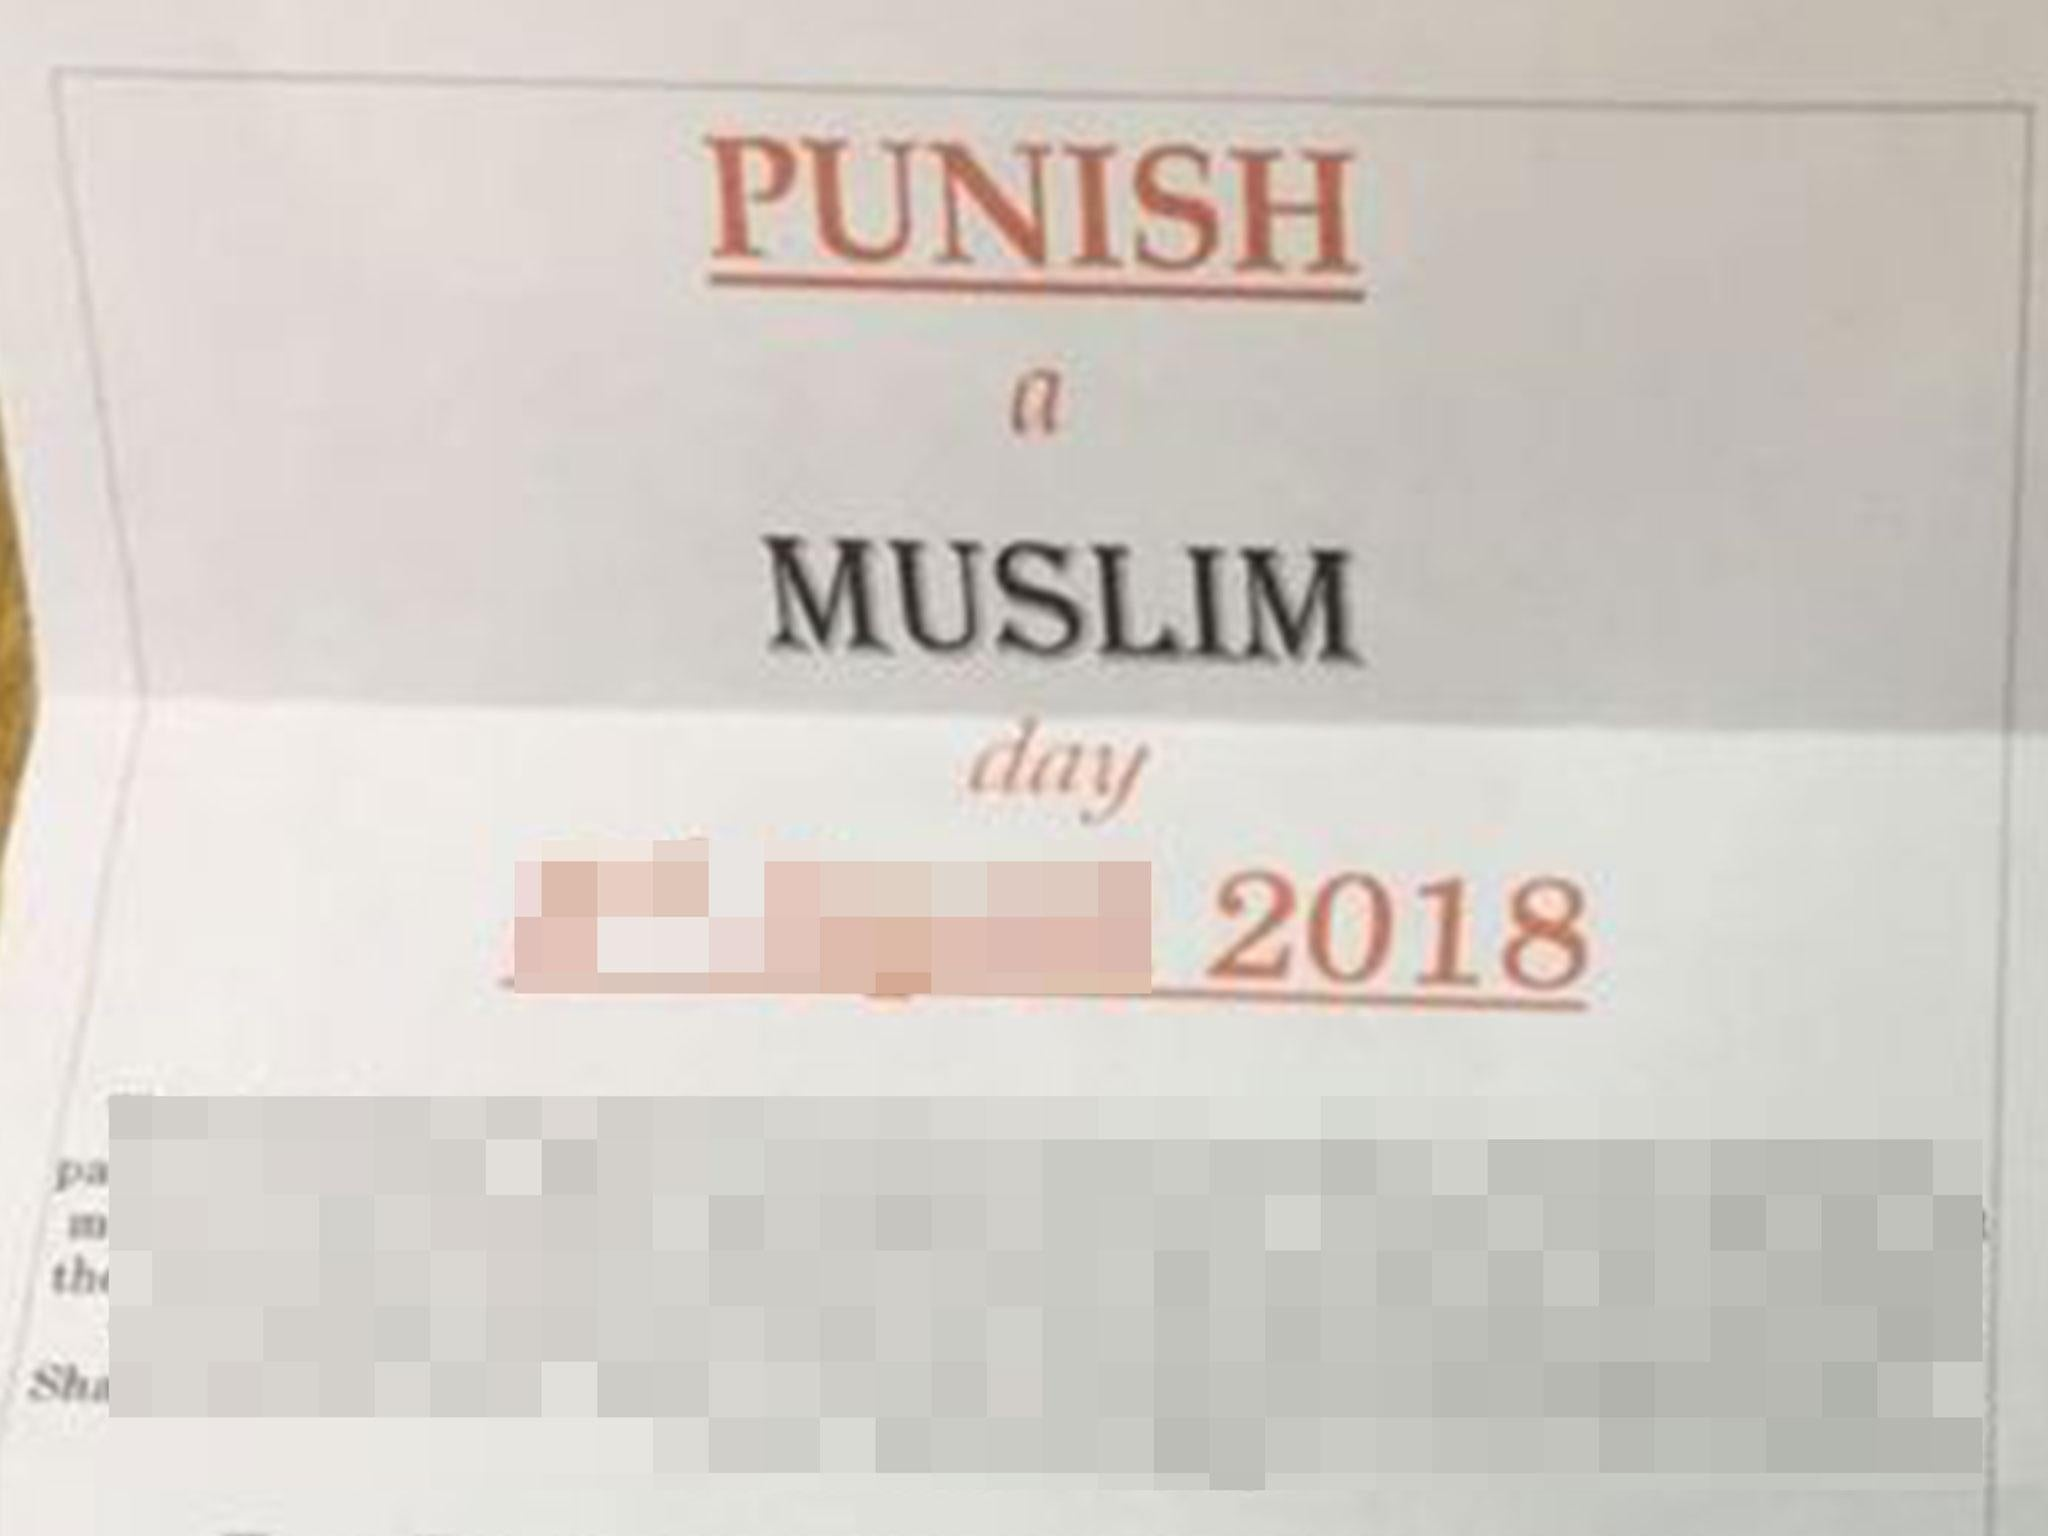 David Parnham: White supremacist behind 'Punish a Muslim Day' responsible for 11 years of malicious letter campaigns